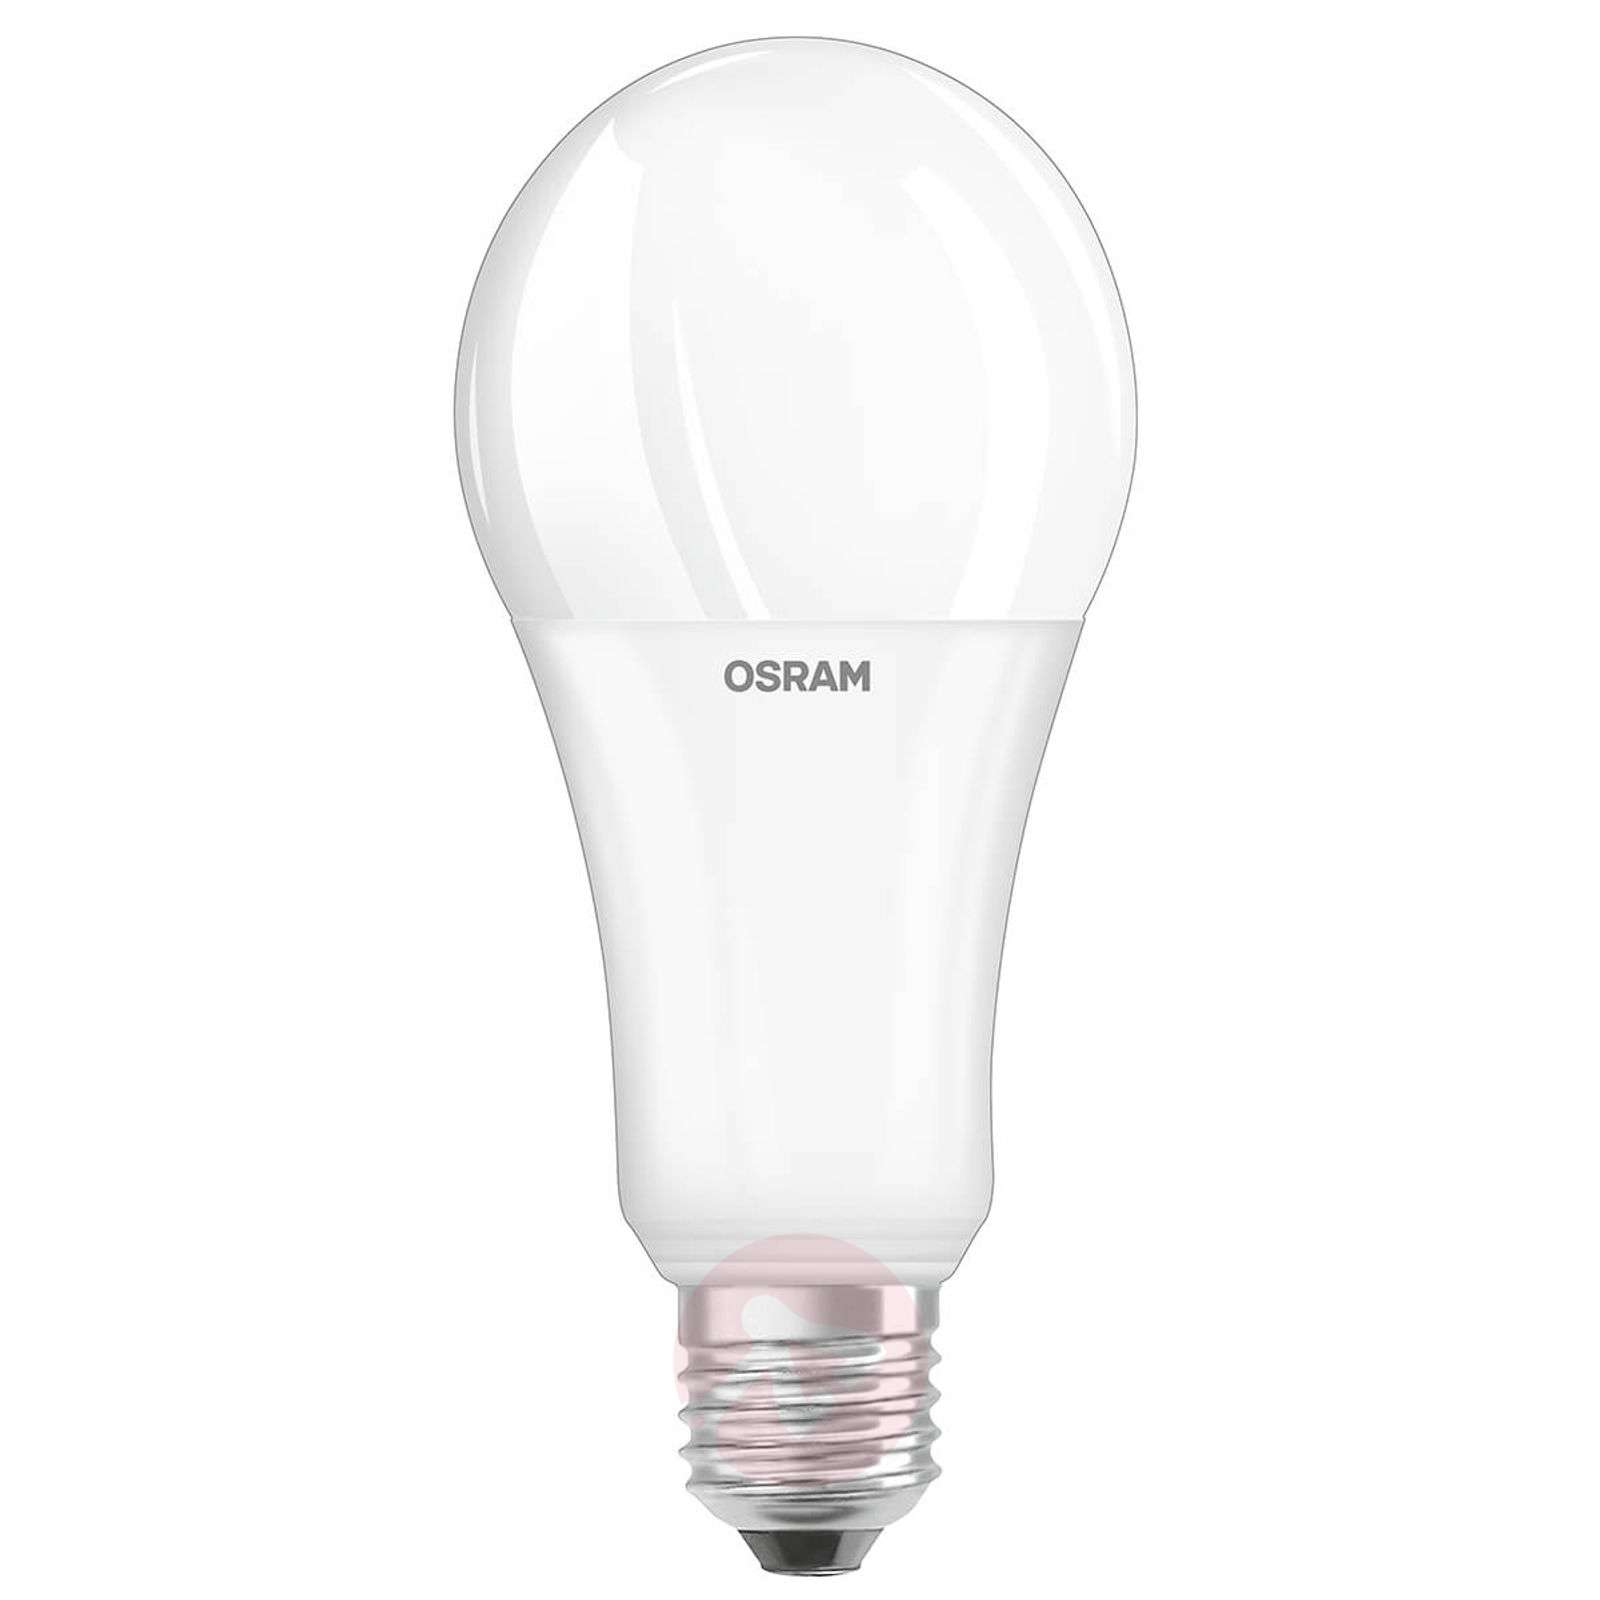 ... LED Bulb E27 21W Warm White 2,500 Lumens Dimmable 7262046 01 ...